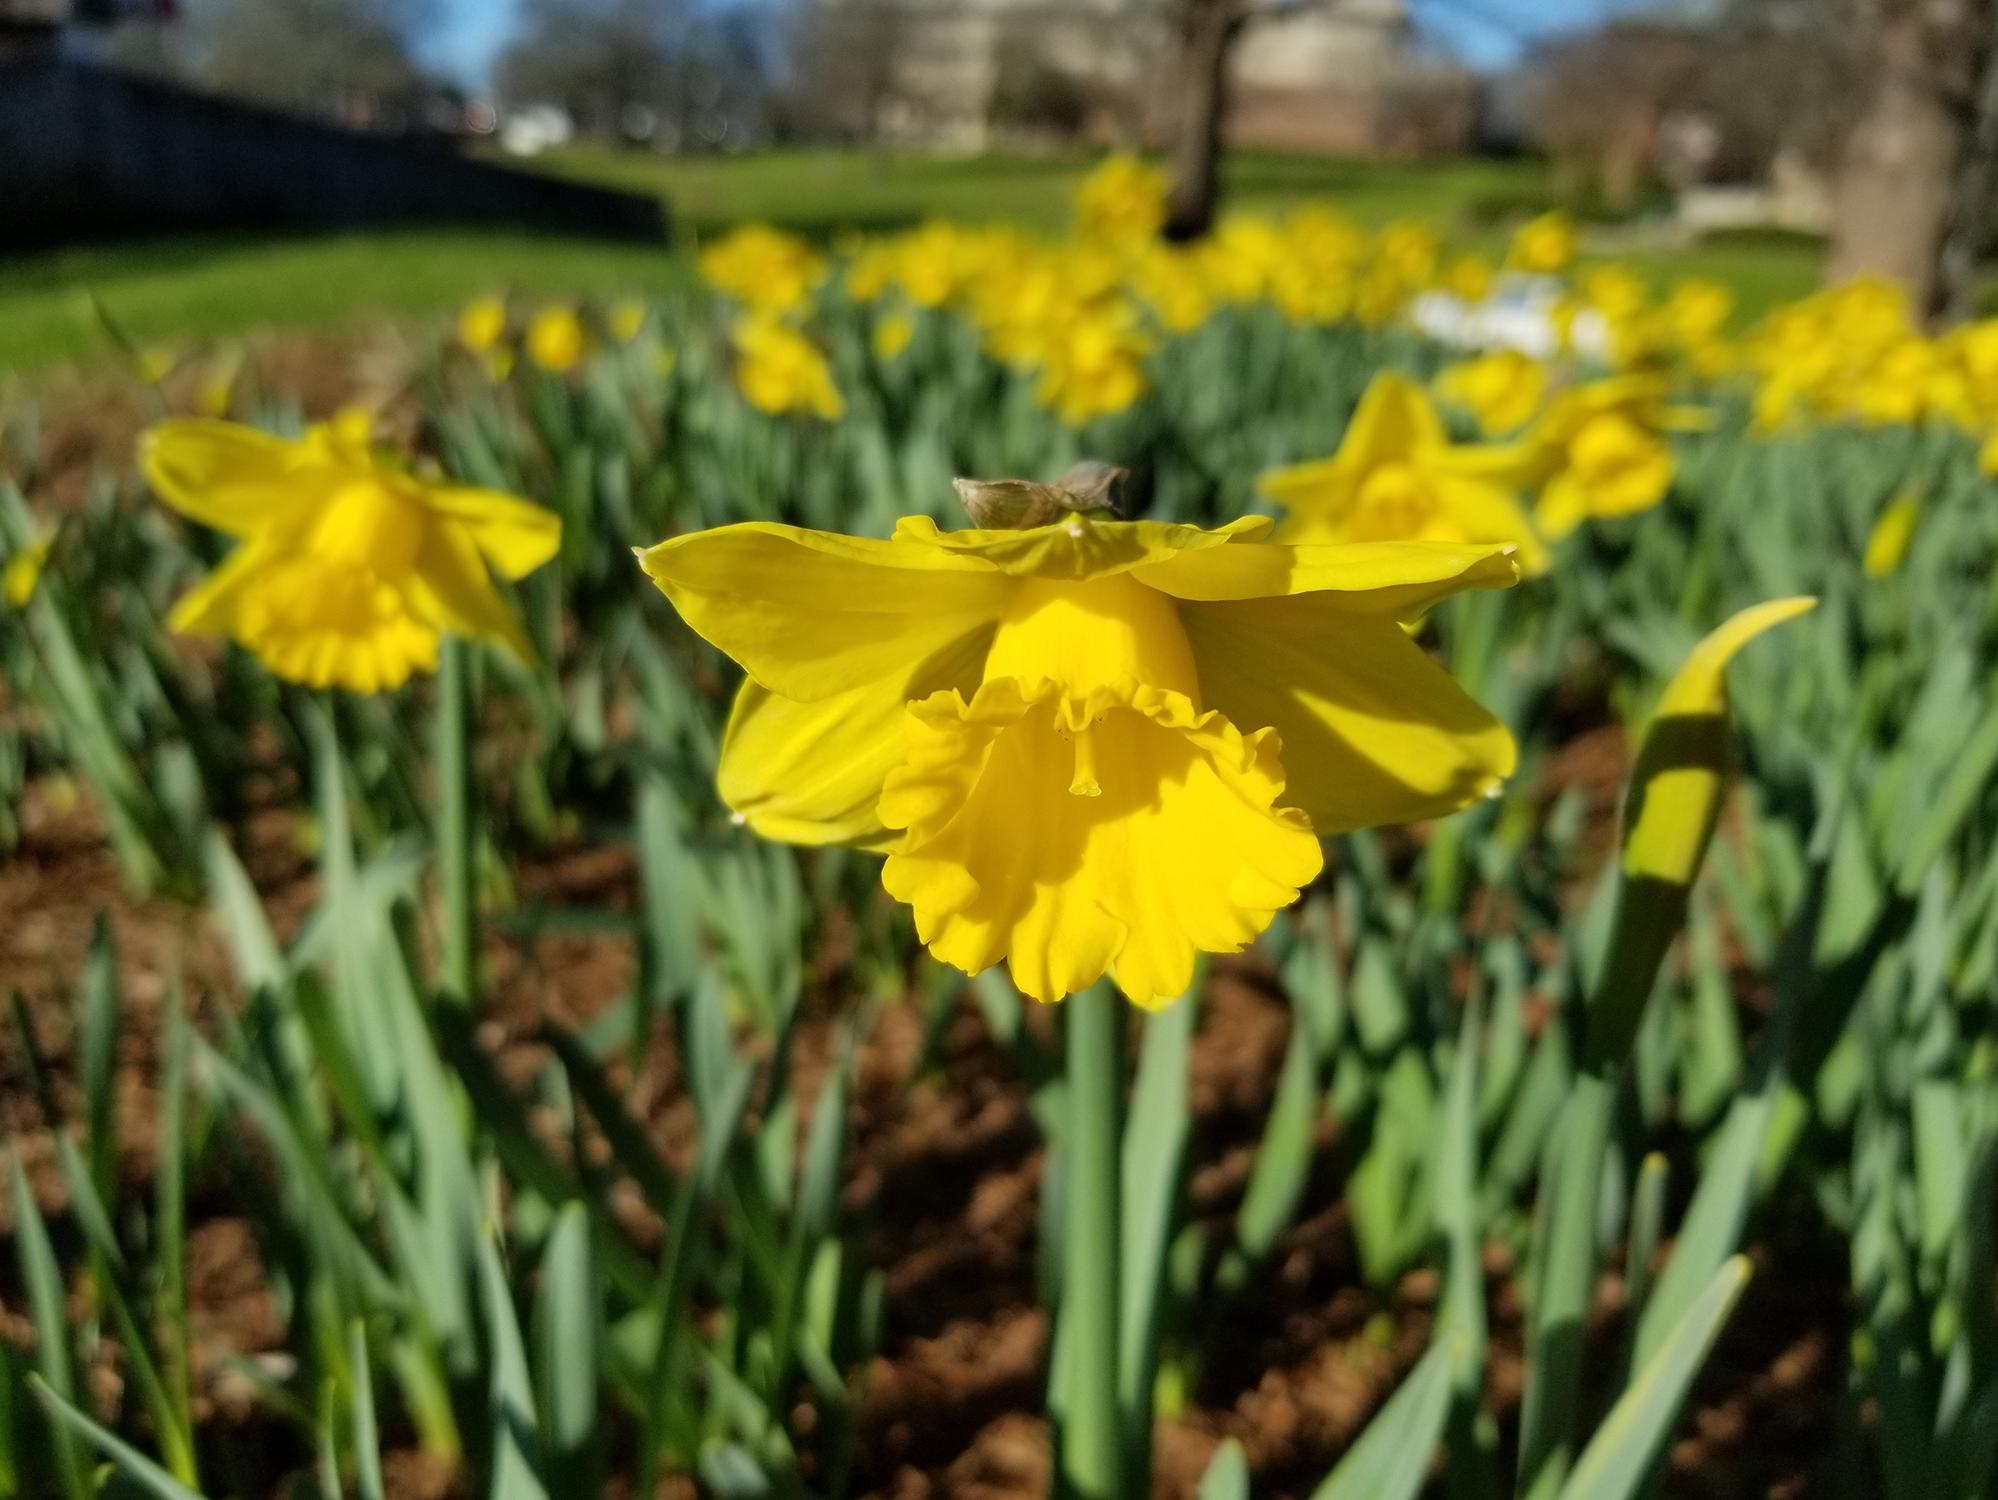 A blooming, yellow daffodil in focus in the foreground with a large cluster of other daffodils behind it out of focus.